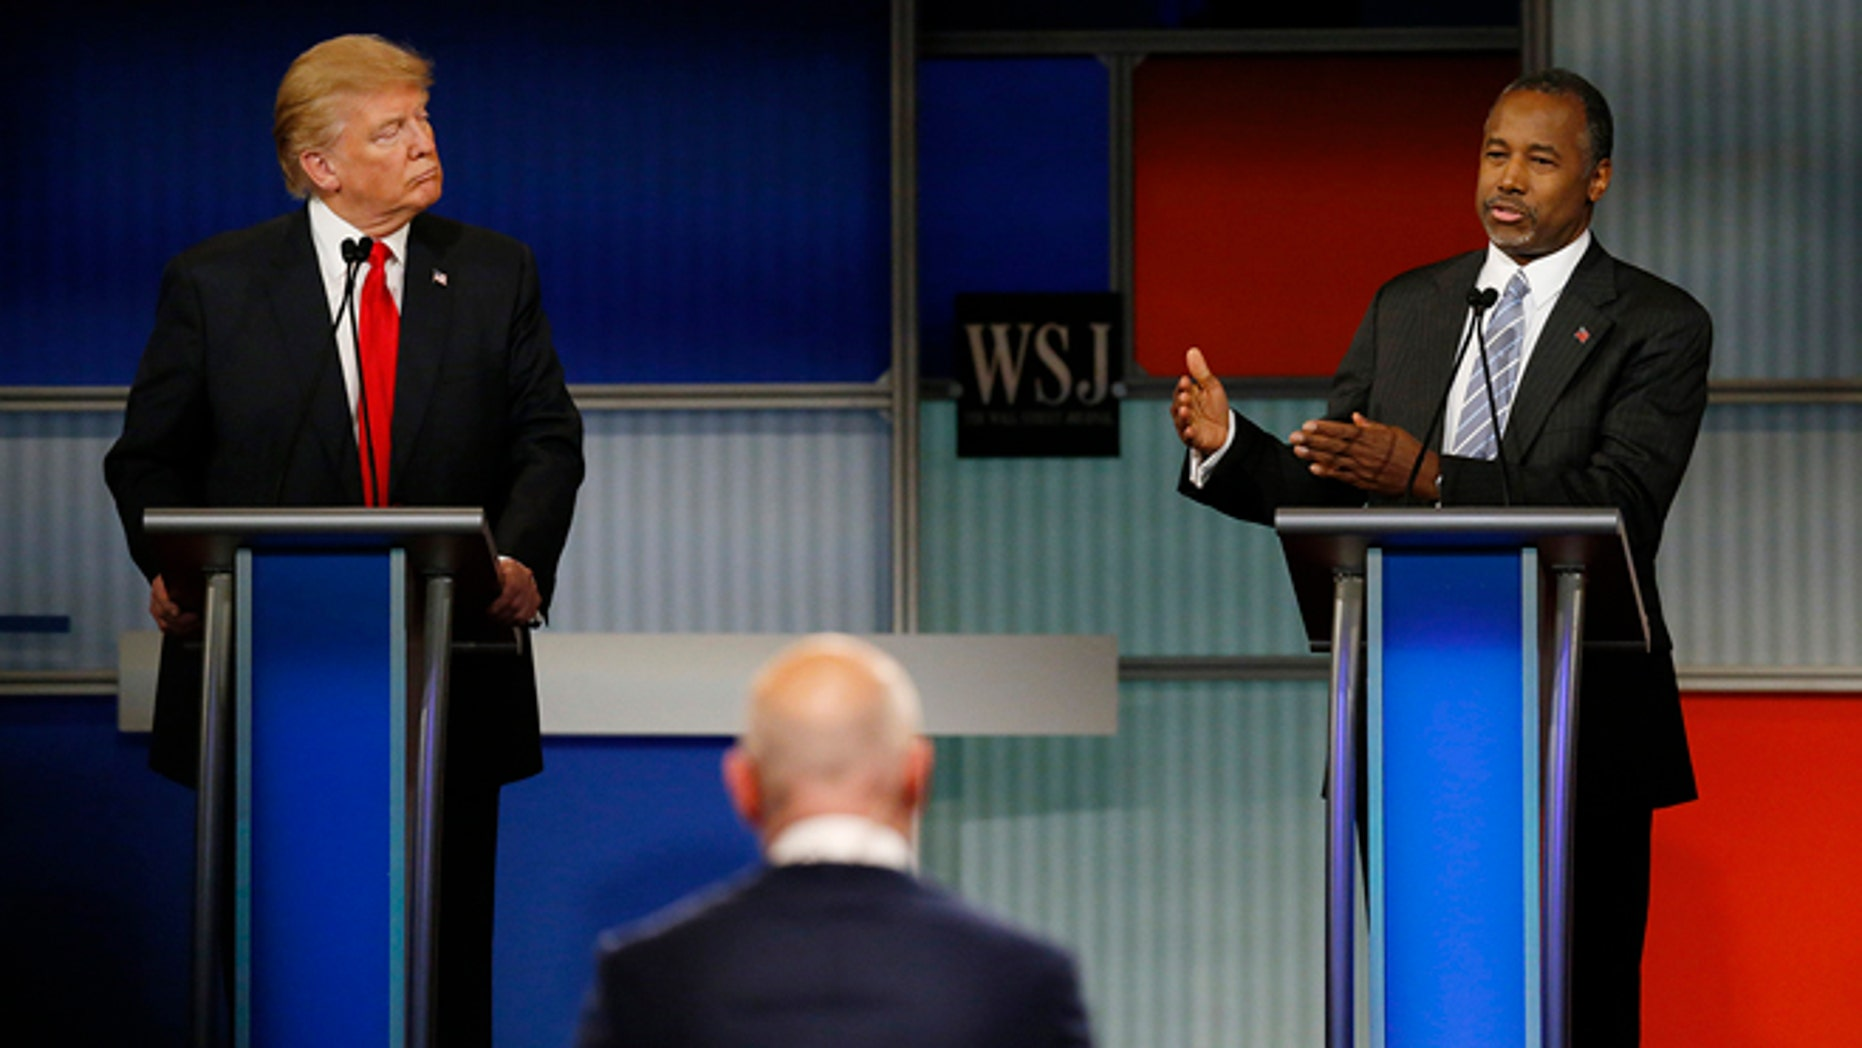 November 10, 2015: Republican U.S. presidential candidate businessman Donald Trump (L) listens as rival candidate Dr. Ben Carson speaks during the debate held by Fox Business Network for the top 2016 U.S. Republican presidential candidates in Milwaukee, Wisconsin. (REUTERS/Jim Young)